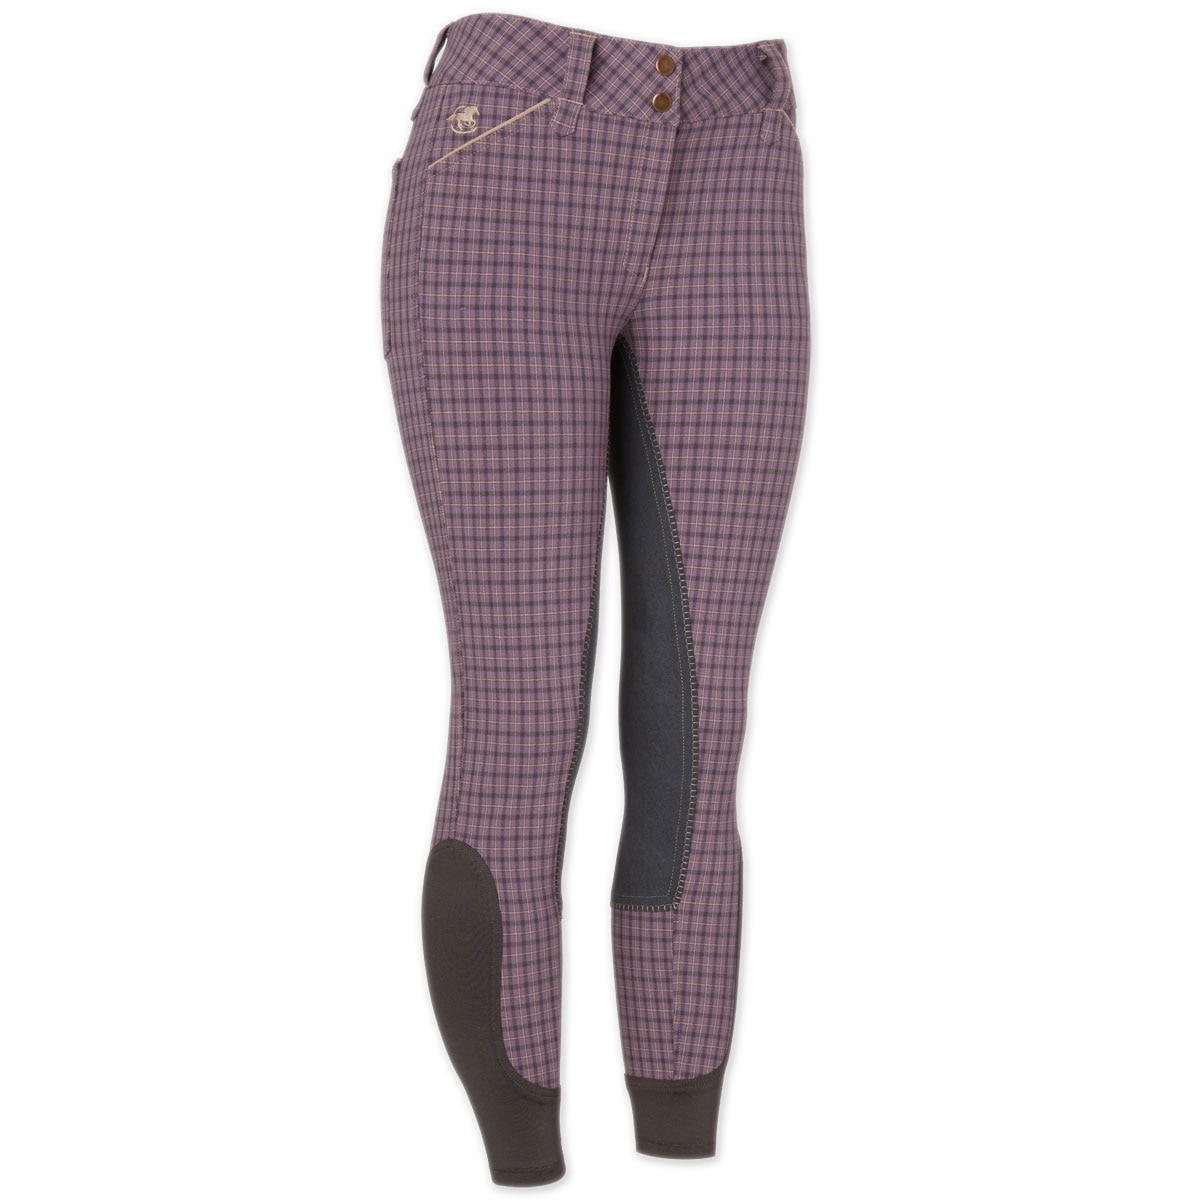 Piper Breeches by SmartPak - Plaid Full Seat- Sale!